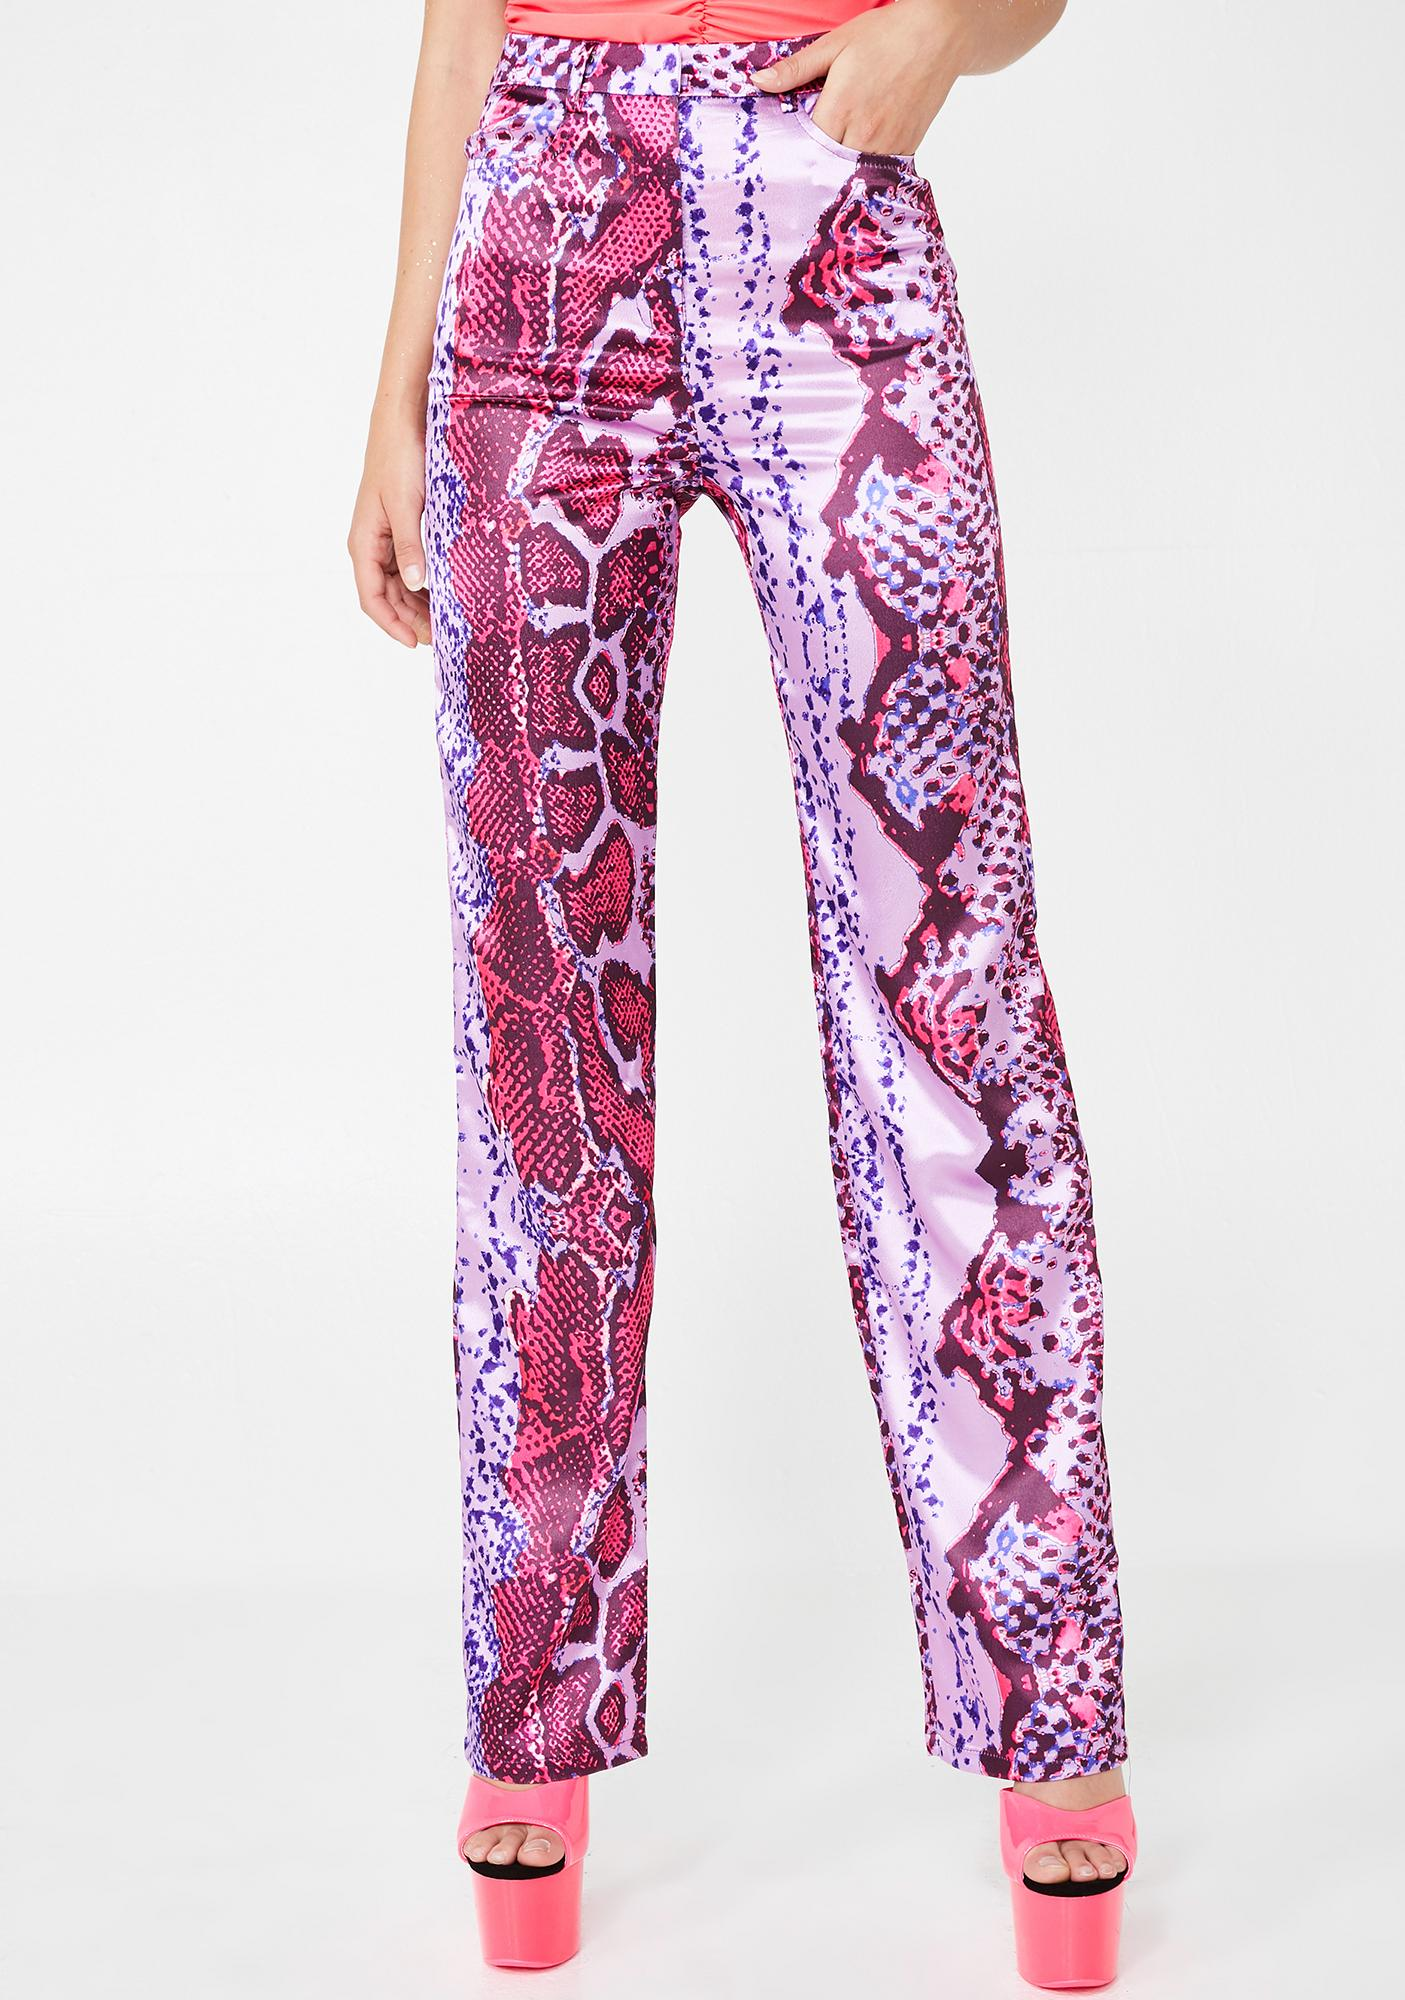 Elsie & Fred Rodeo Satin Pink Straight Leg Trousers